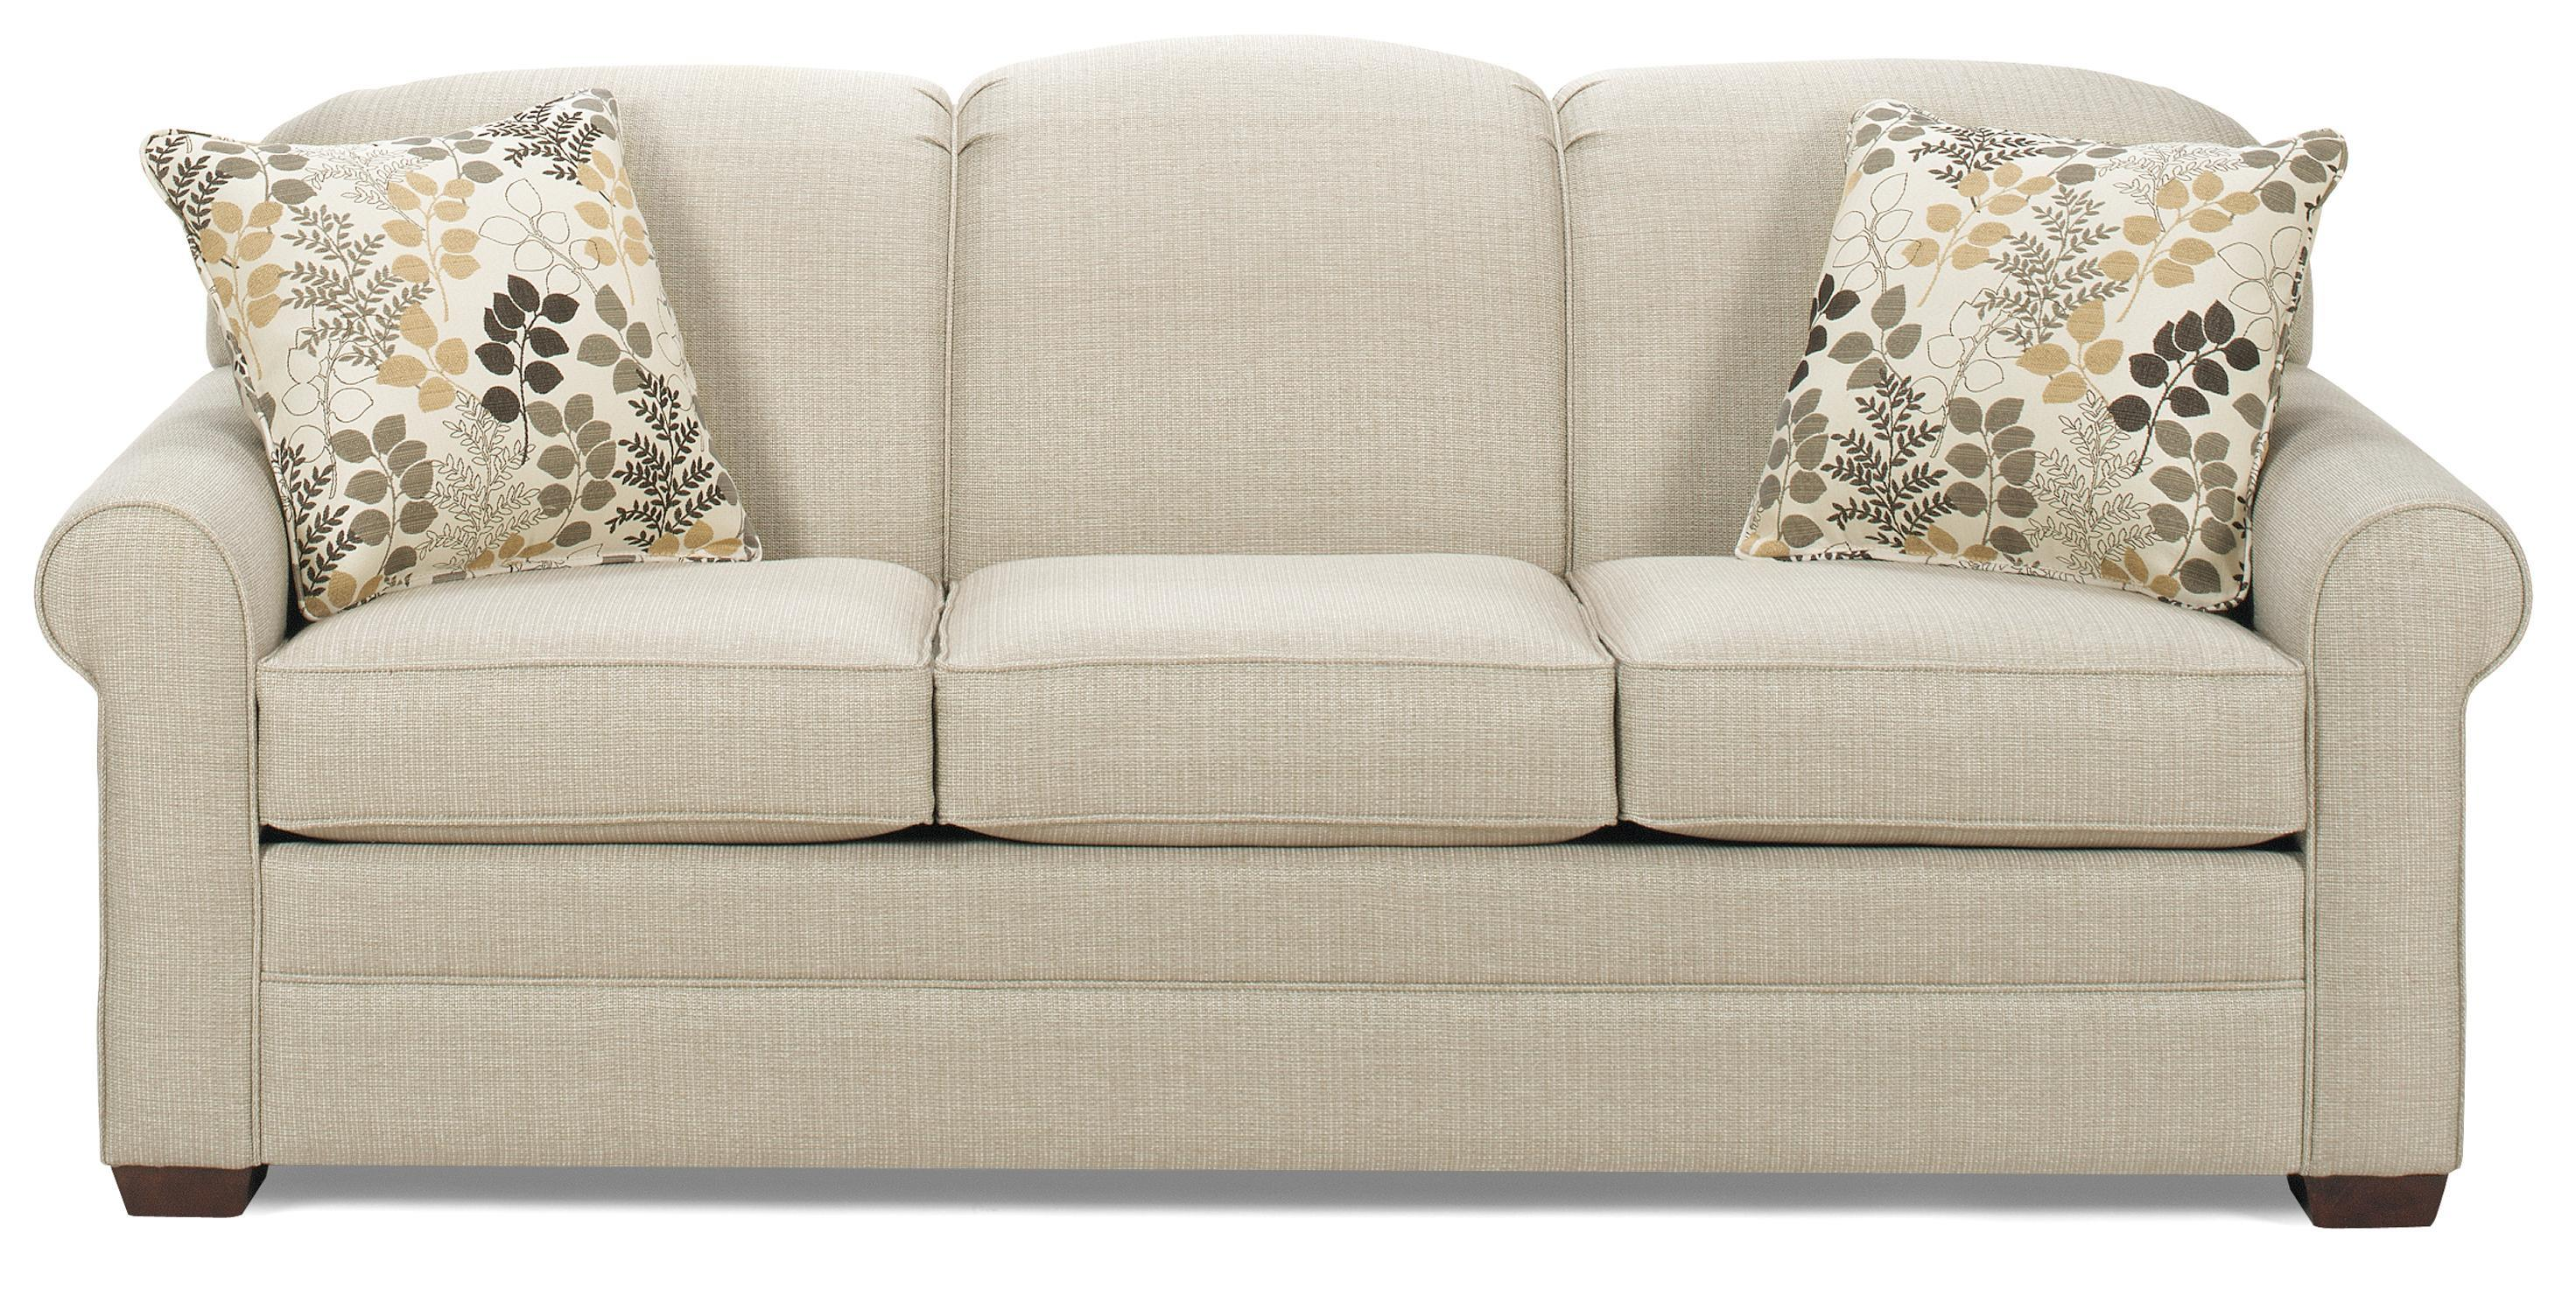 7185 Sofa by Craftmaster at Baer's Furniture